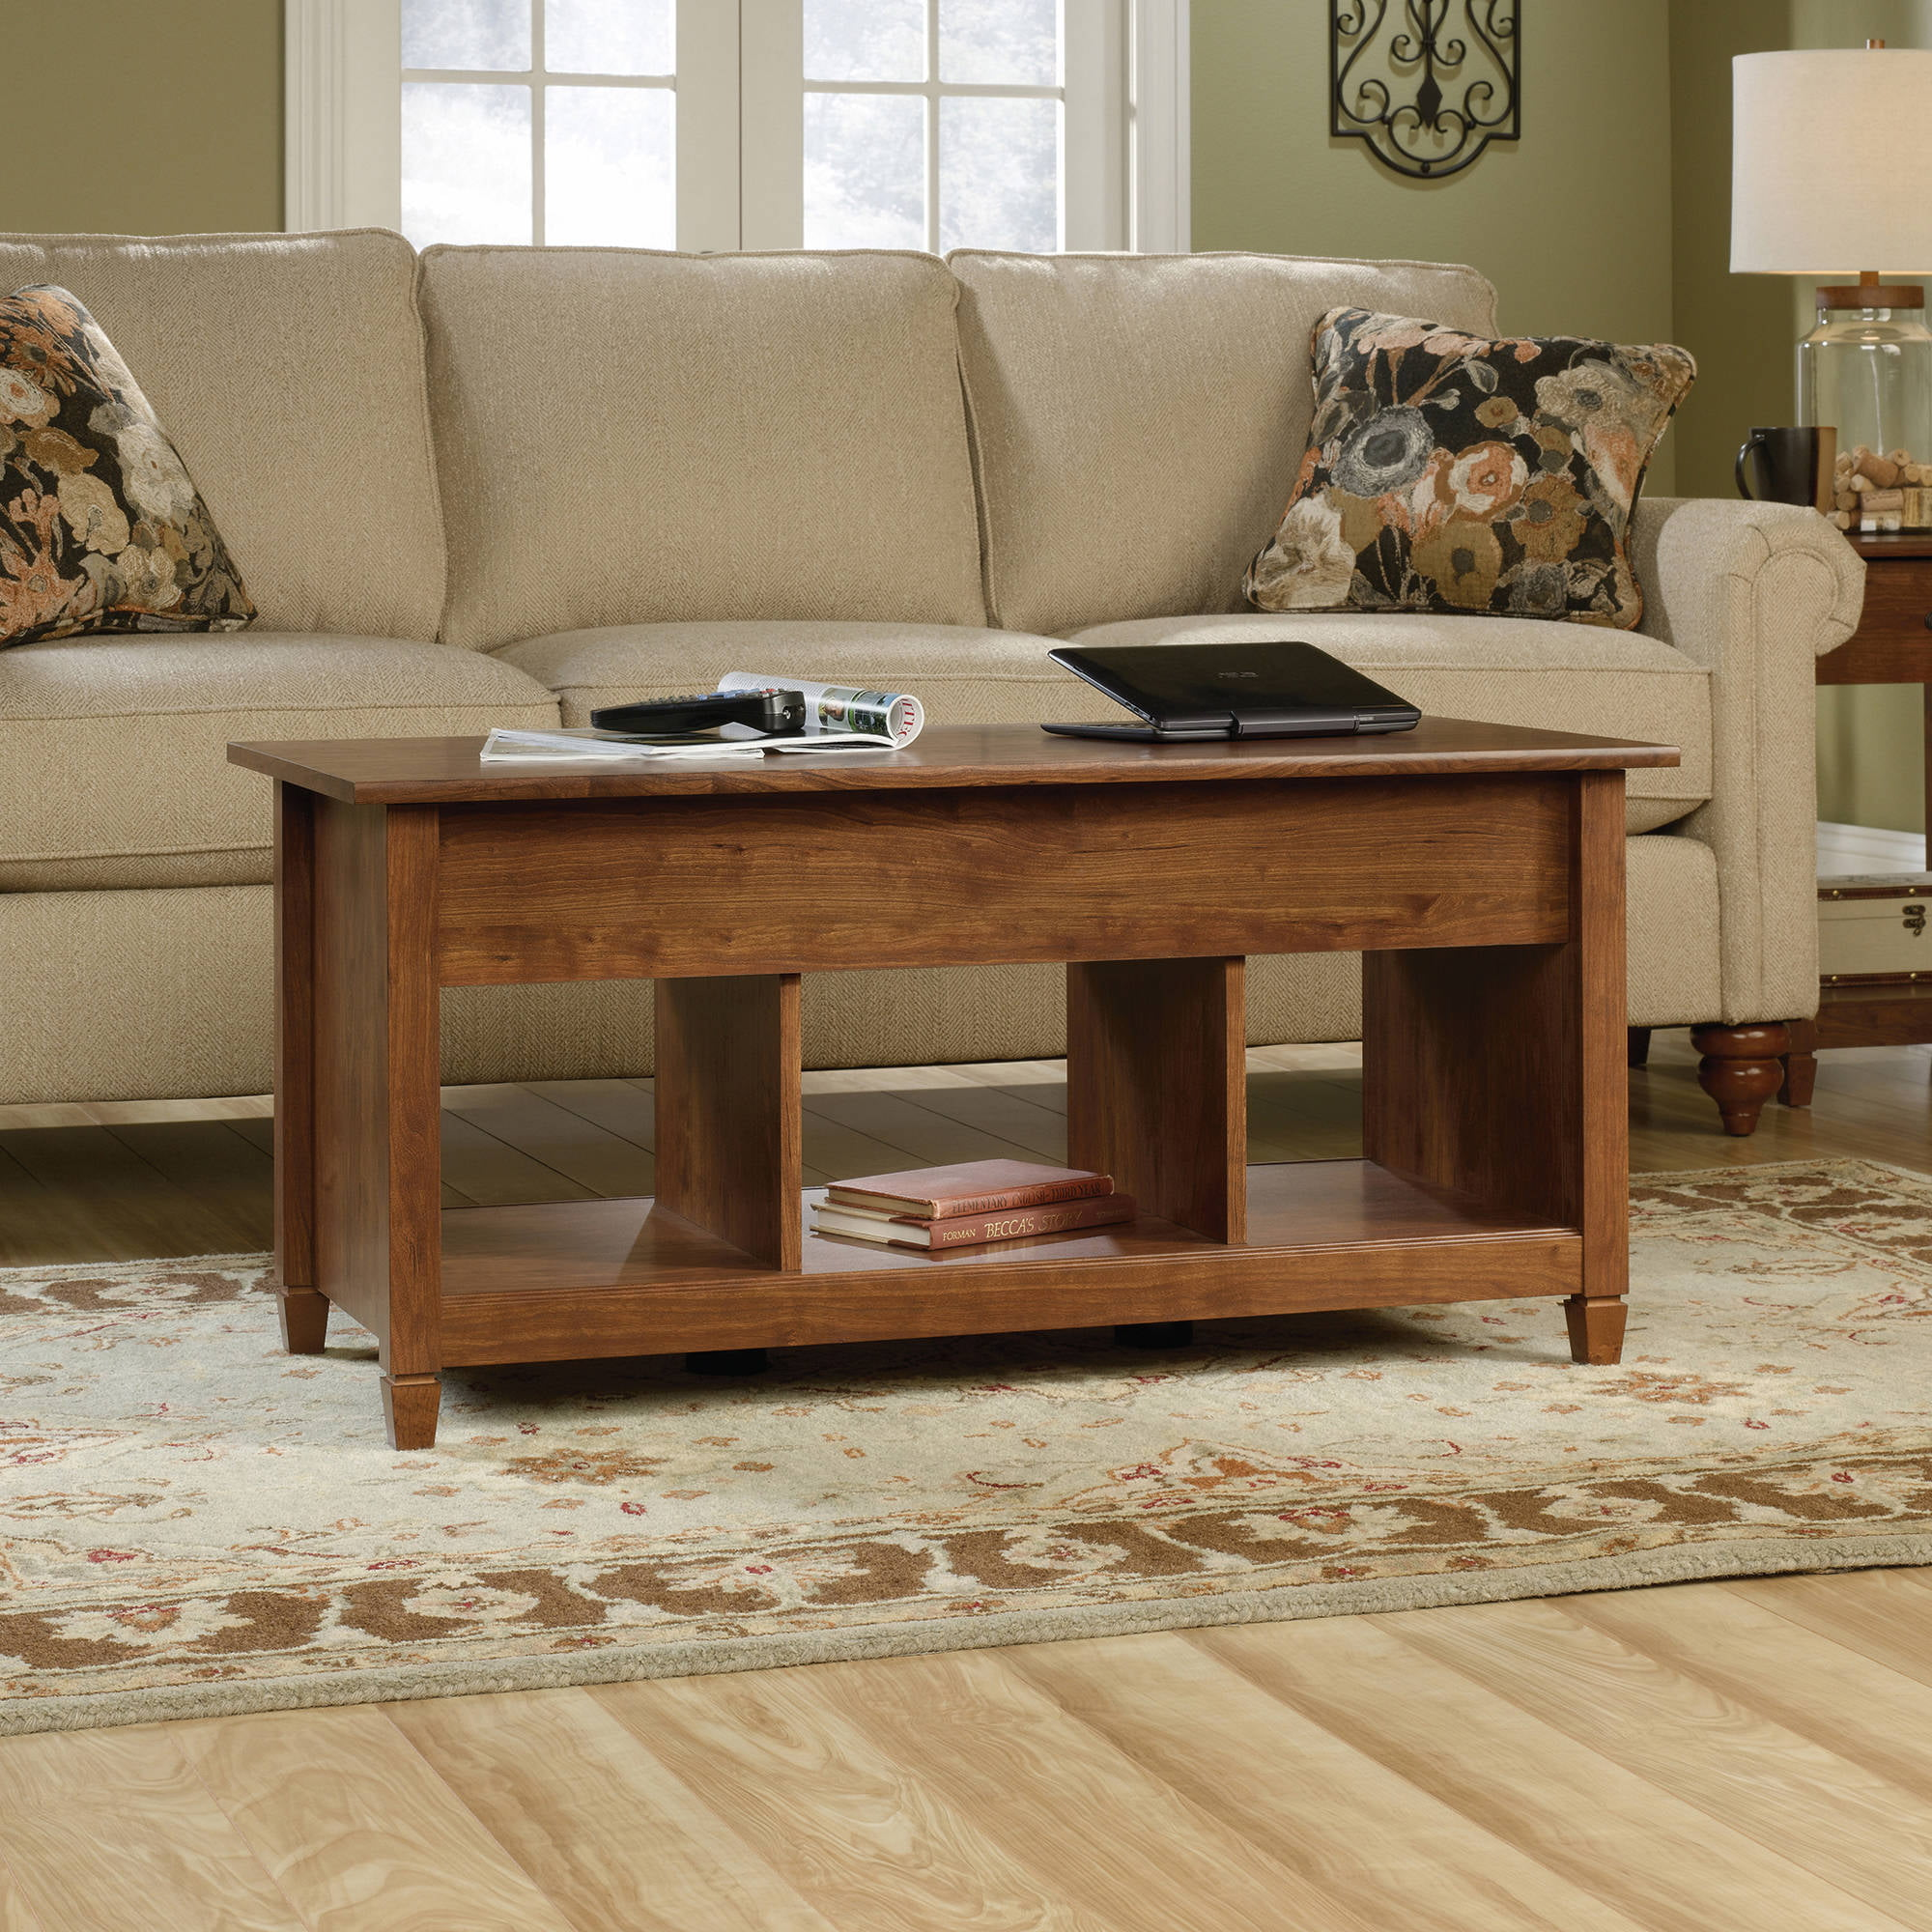 Malden Lift Top Coffee Table Espresso Walmart